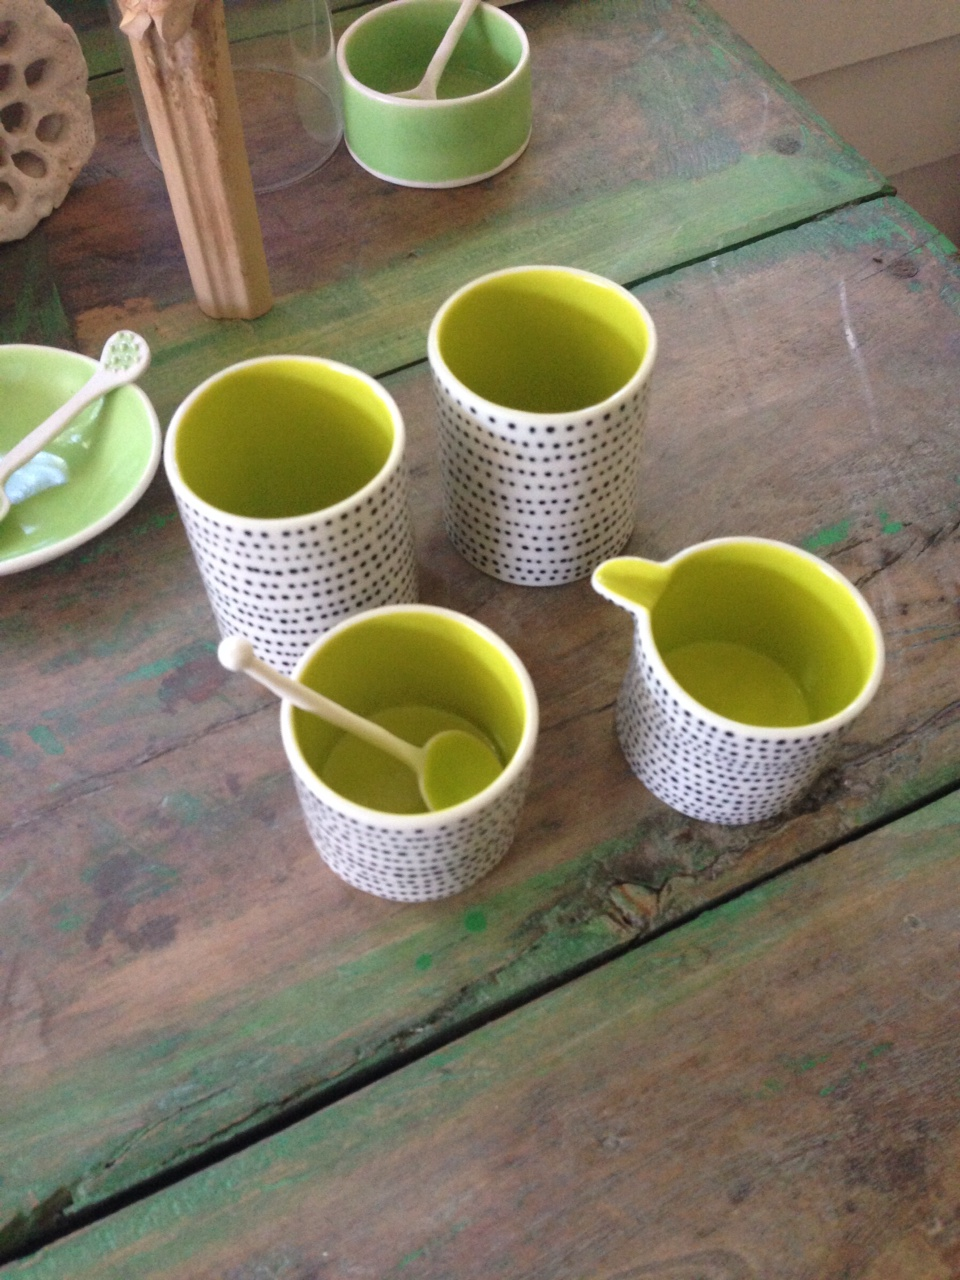 colorful tea sets, hand-made ceramic artwork, bright colored cups,